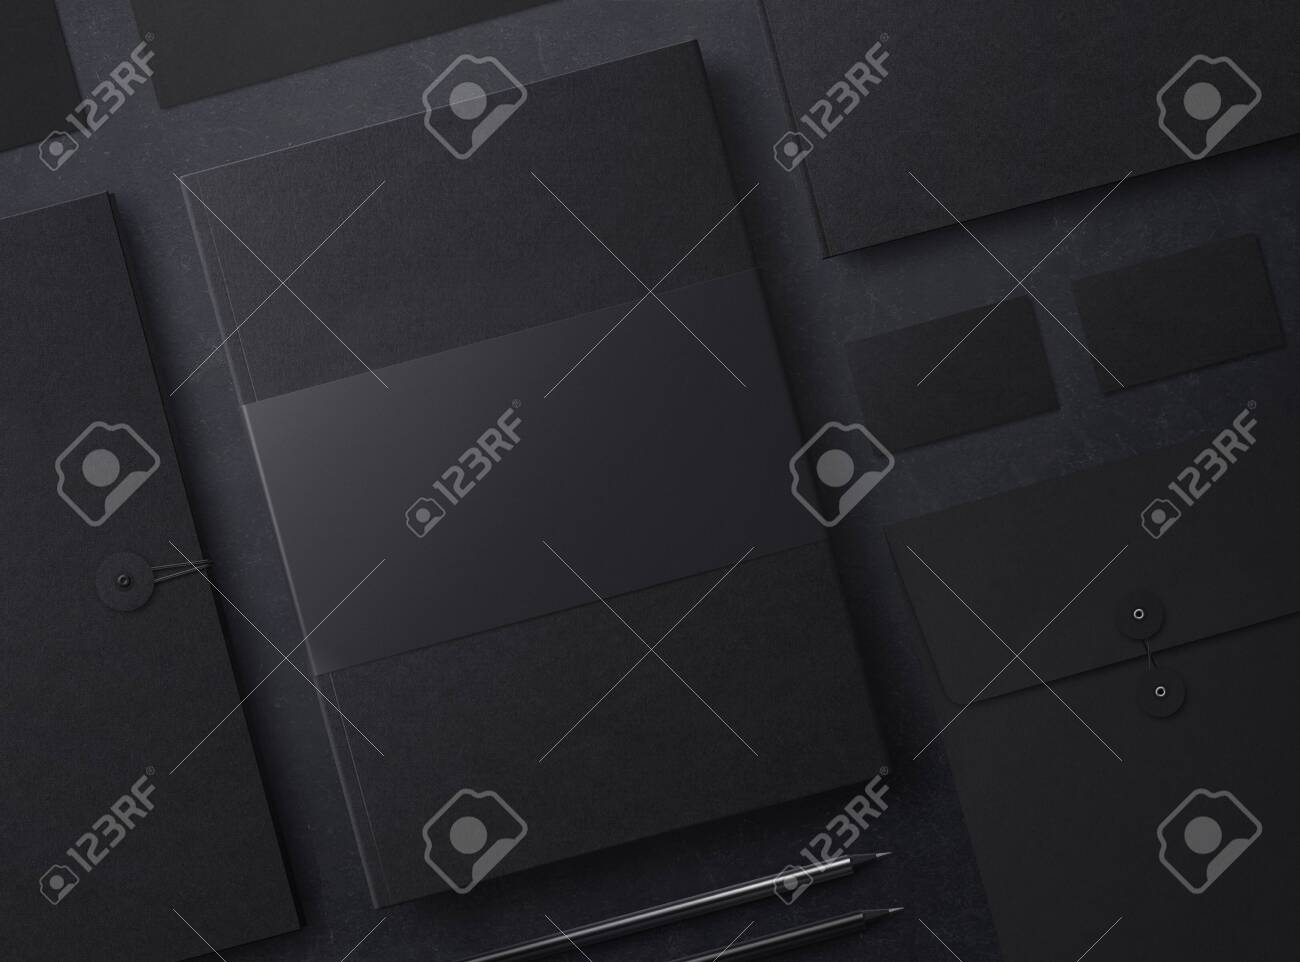 Set of mock up elements on black background. Template for branding identity. Blank objects for placing your design. 3d illustration. - 149594250